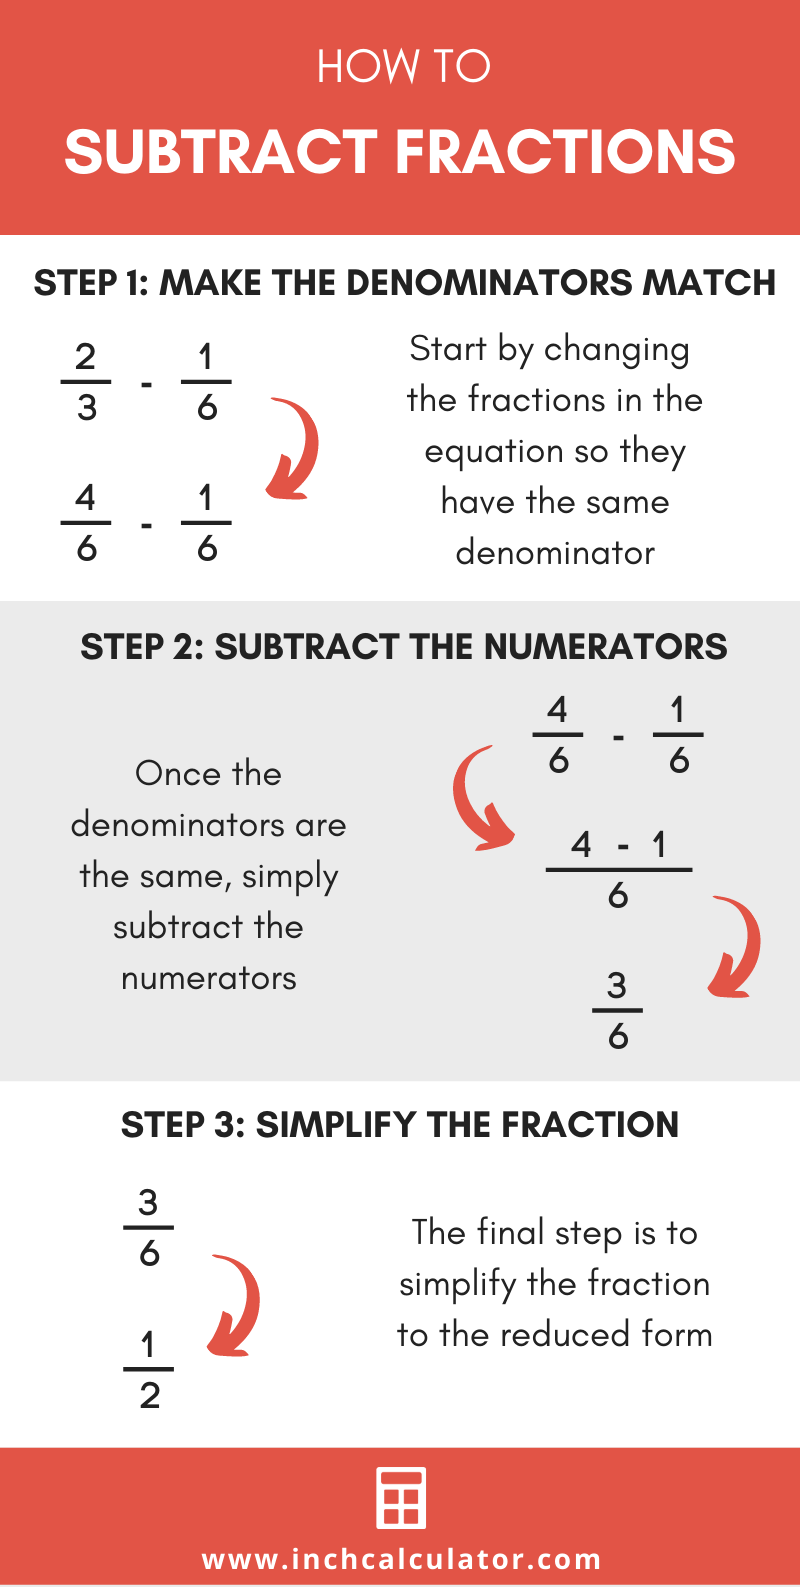 Illustration showing how to subtract two fractions step-by-step